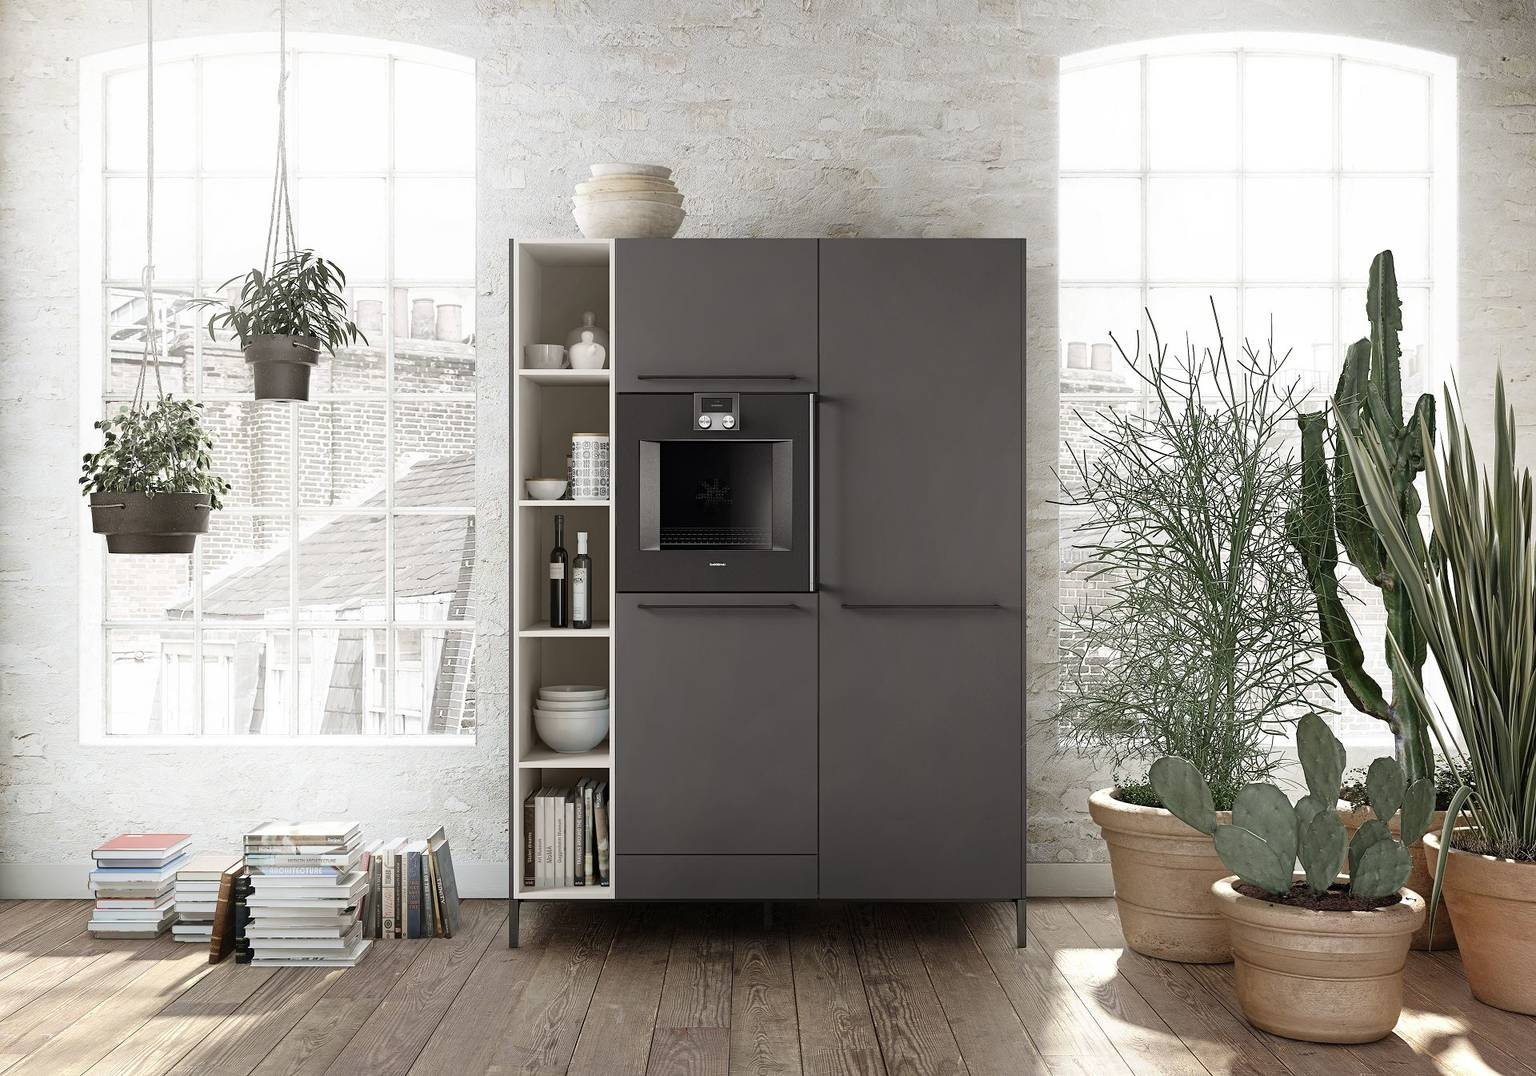 Tall cabinet ensemble with oven, fridge or dishwasher - a functional addition to the SieMatic 29